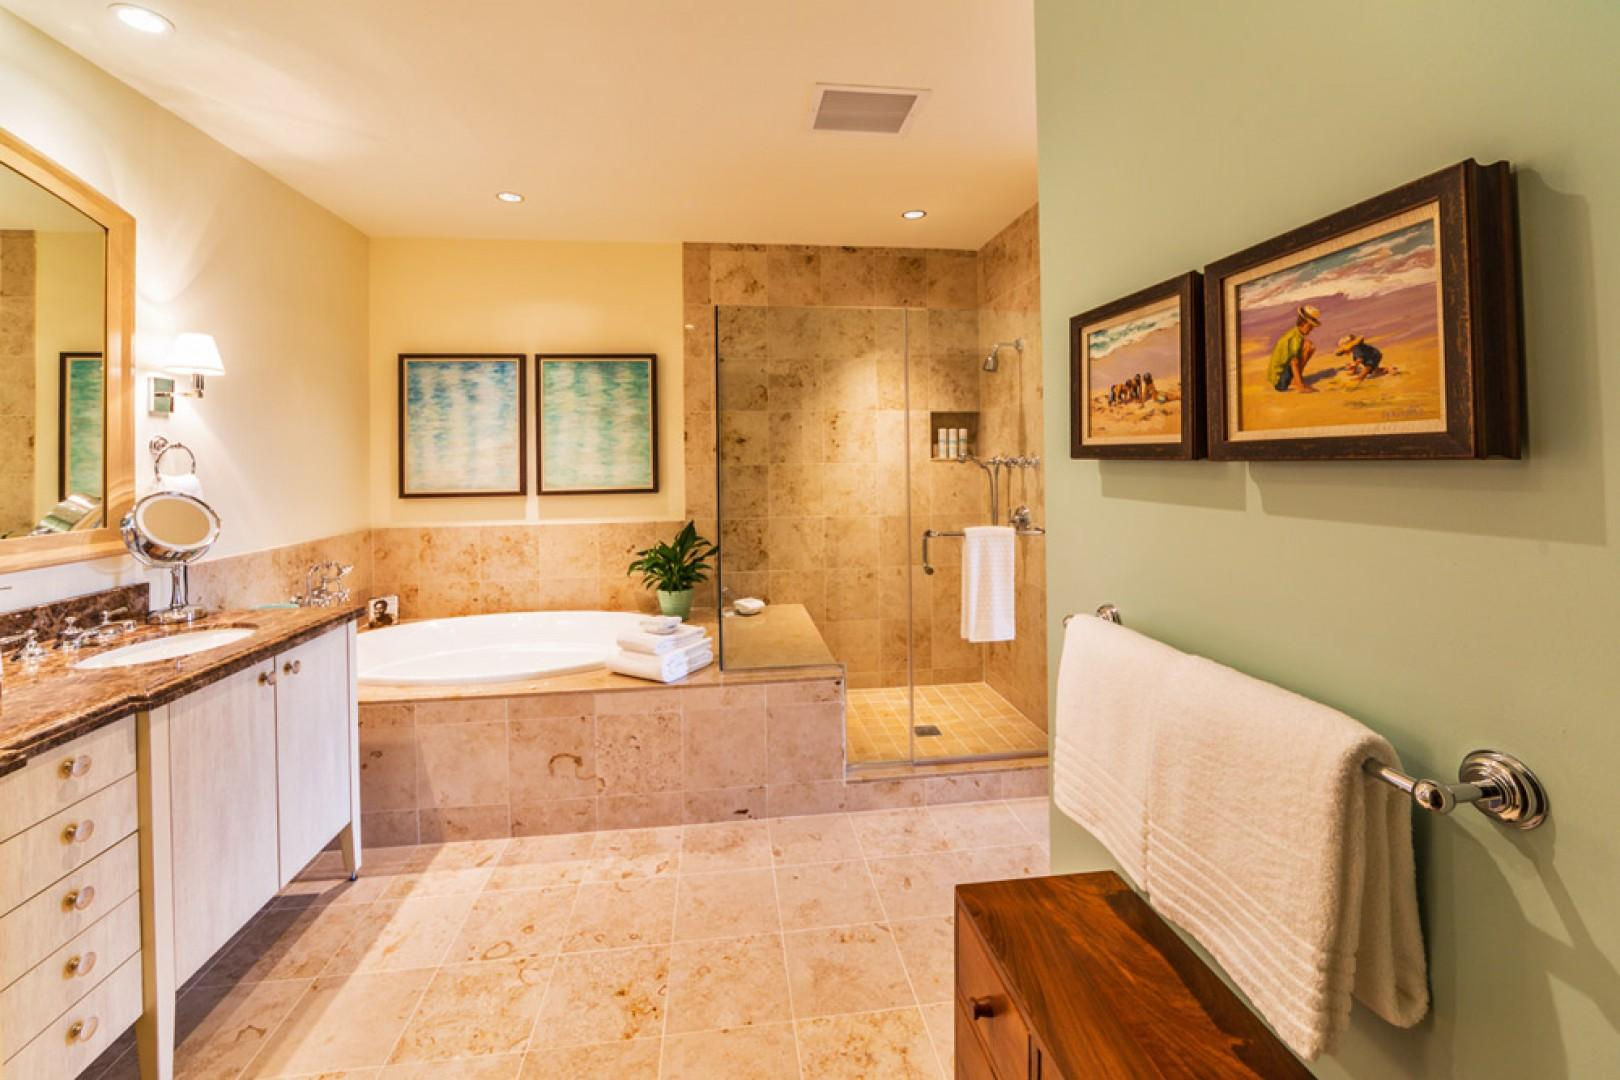 K507 Wailea Seashore Suite - Master Bedroom En-Suite Bathroom with Deep Soaking Tub, Glass Shower, Private WC, Dual Vanities, Walk-In Closet, Hair Dryers, Scale, Make Up Mirrors, Plush Cotton Bathrobes, Toiletries, Abundant Fluffy Towels, and more